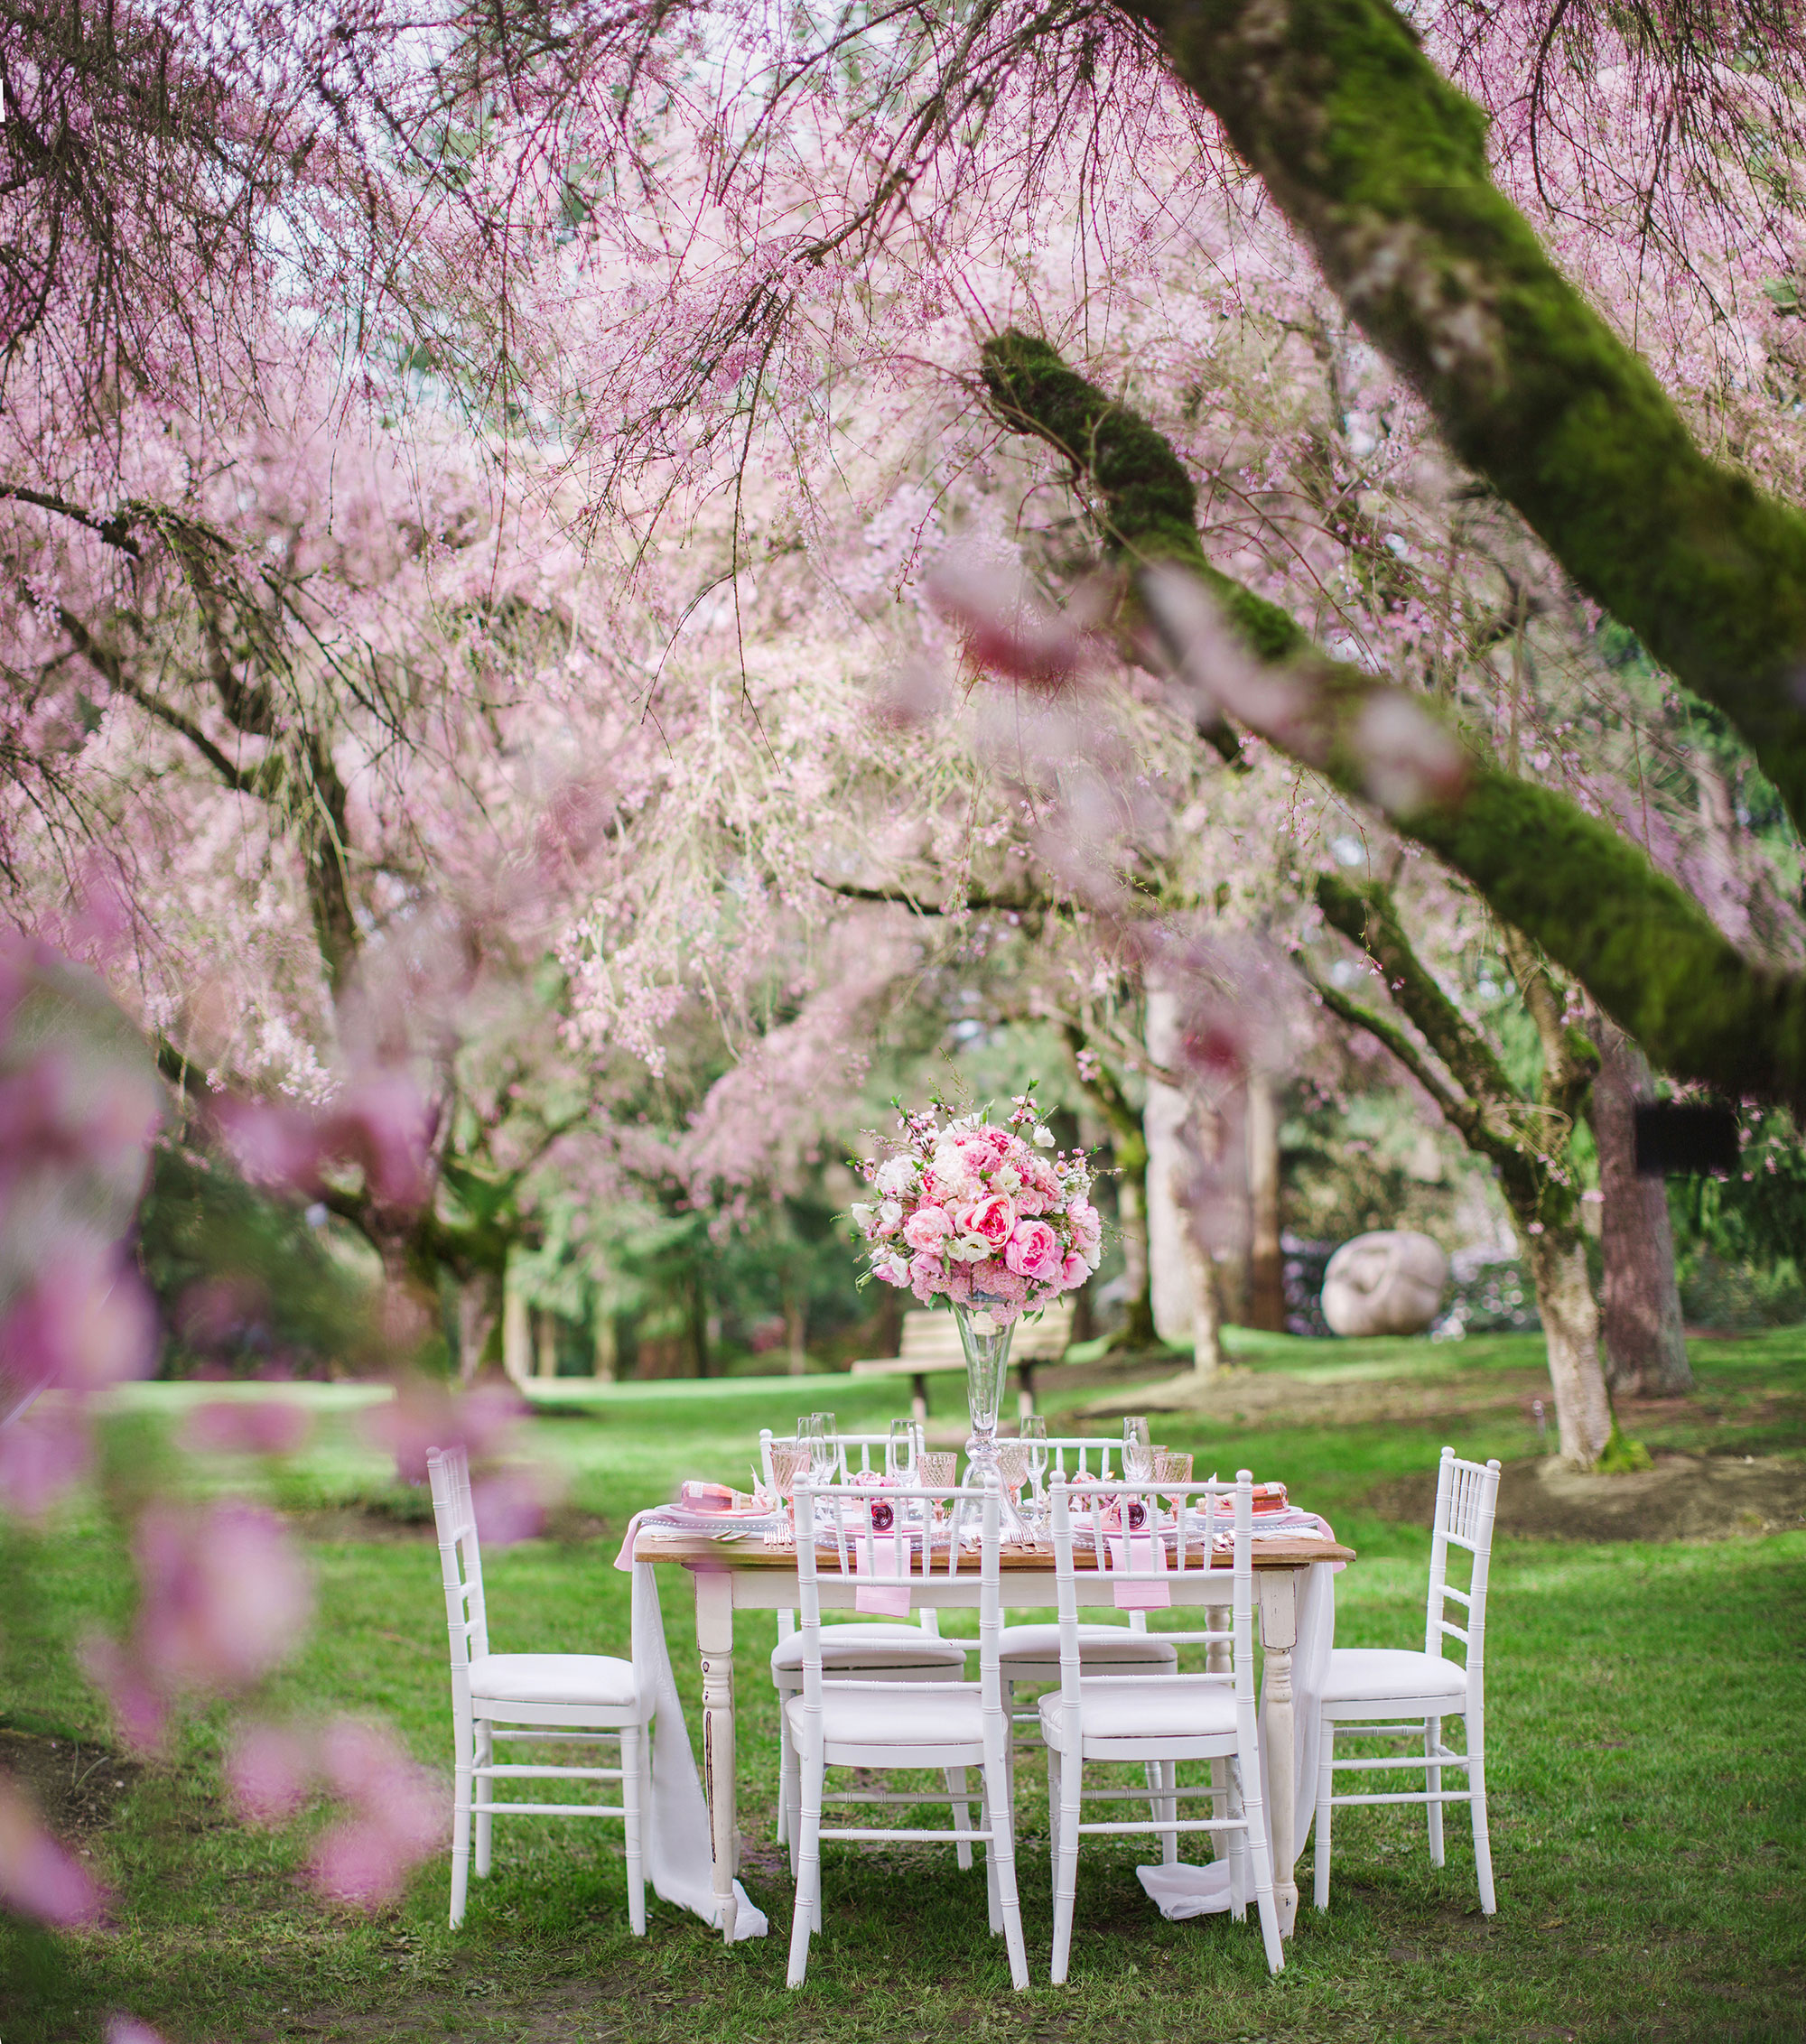 a wedding romance under the cherry blossoms